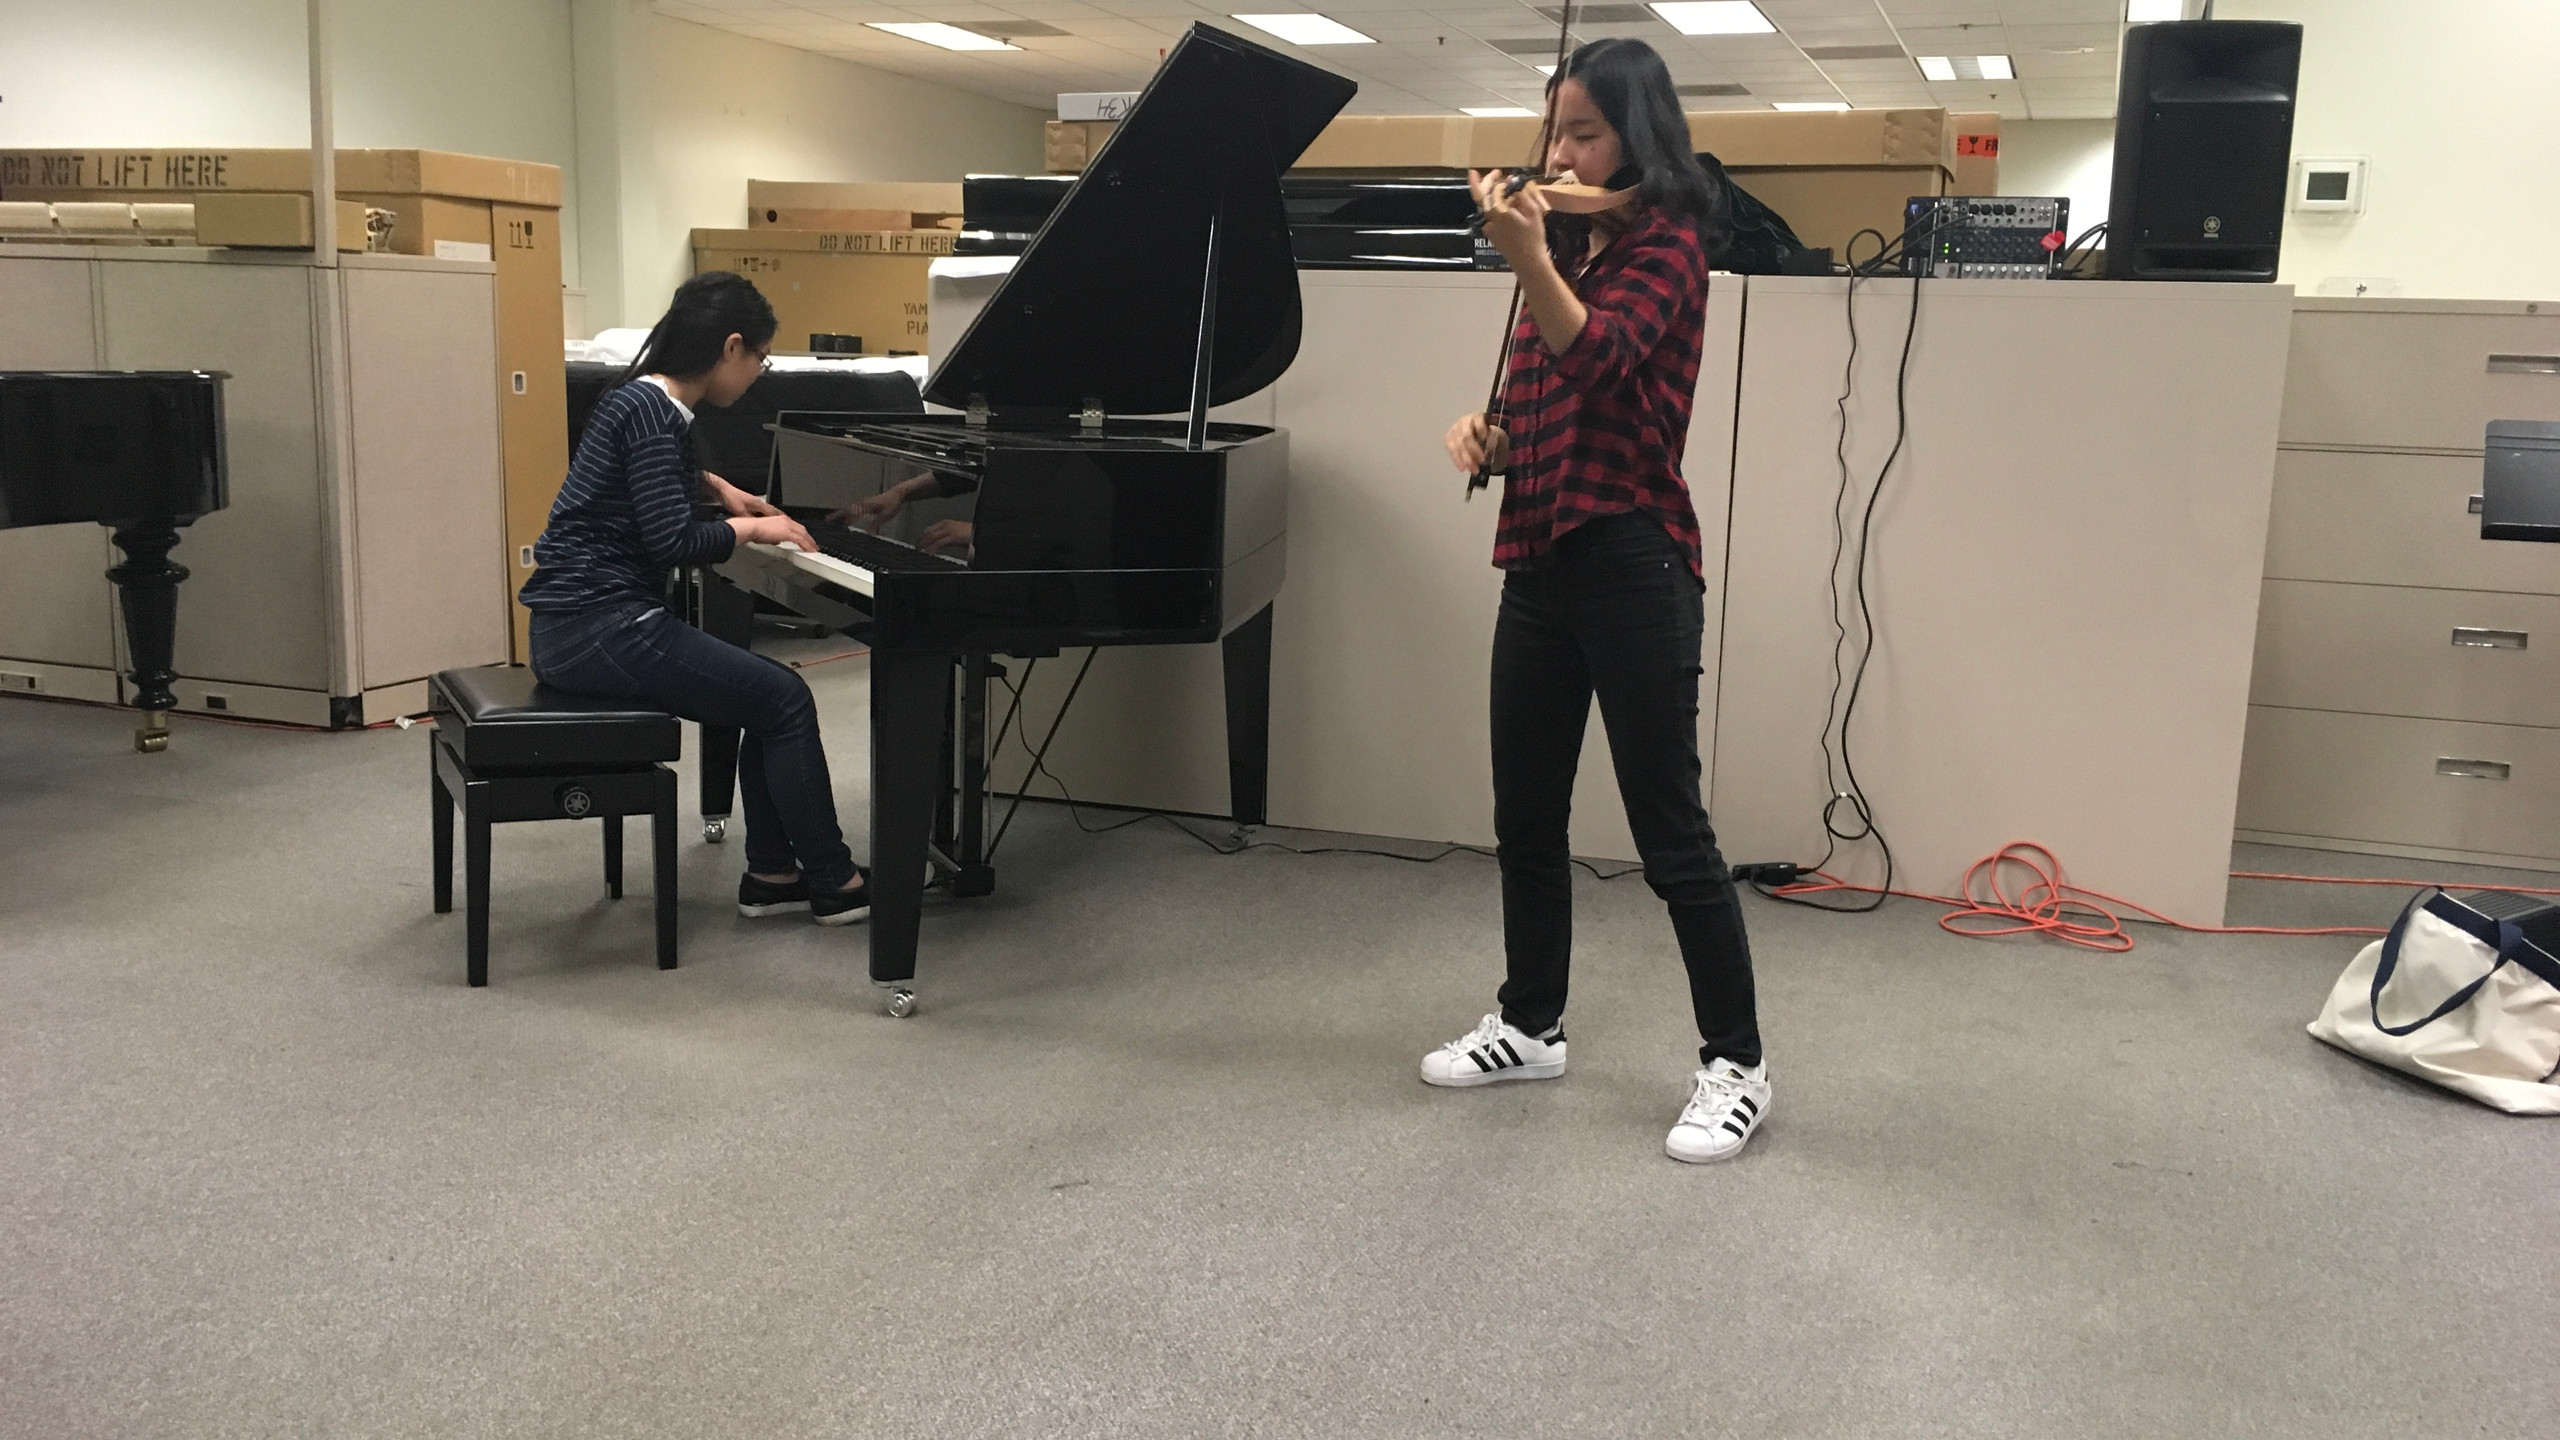 Practice time at NAMM 2018